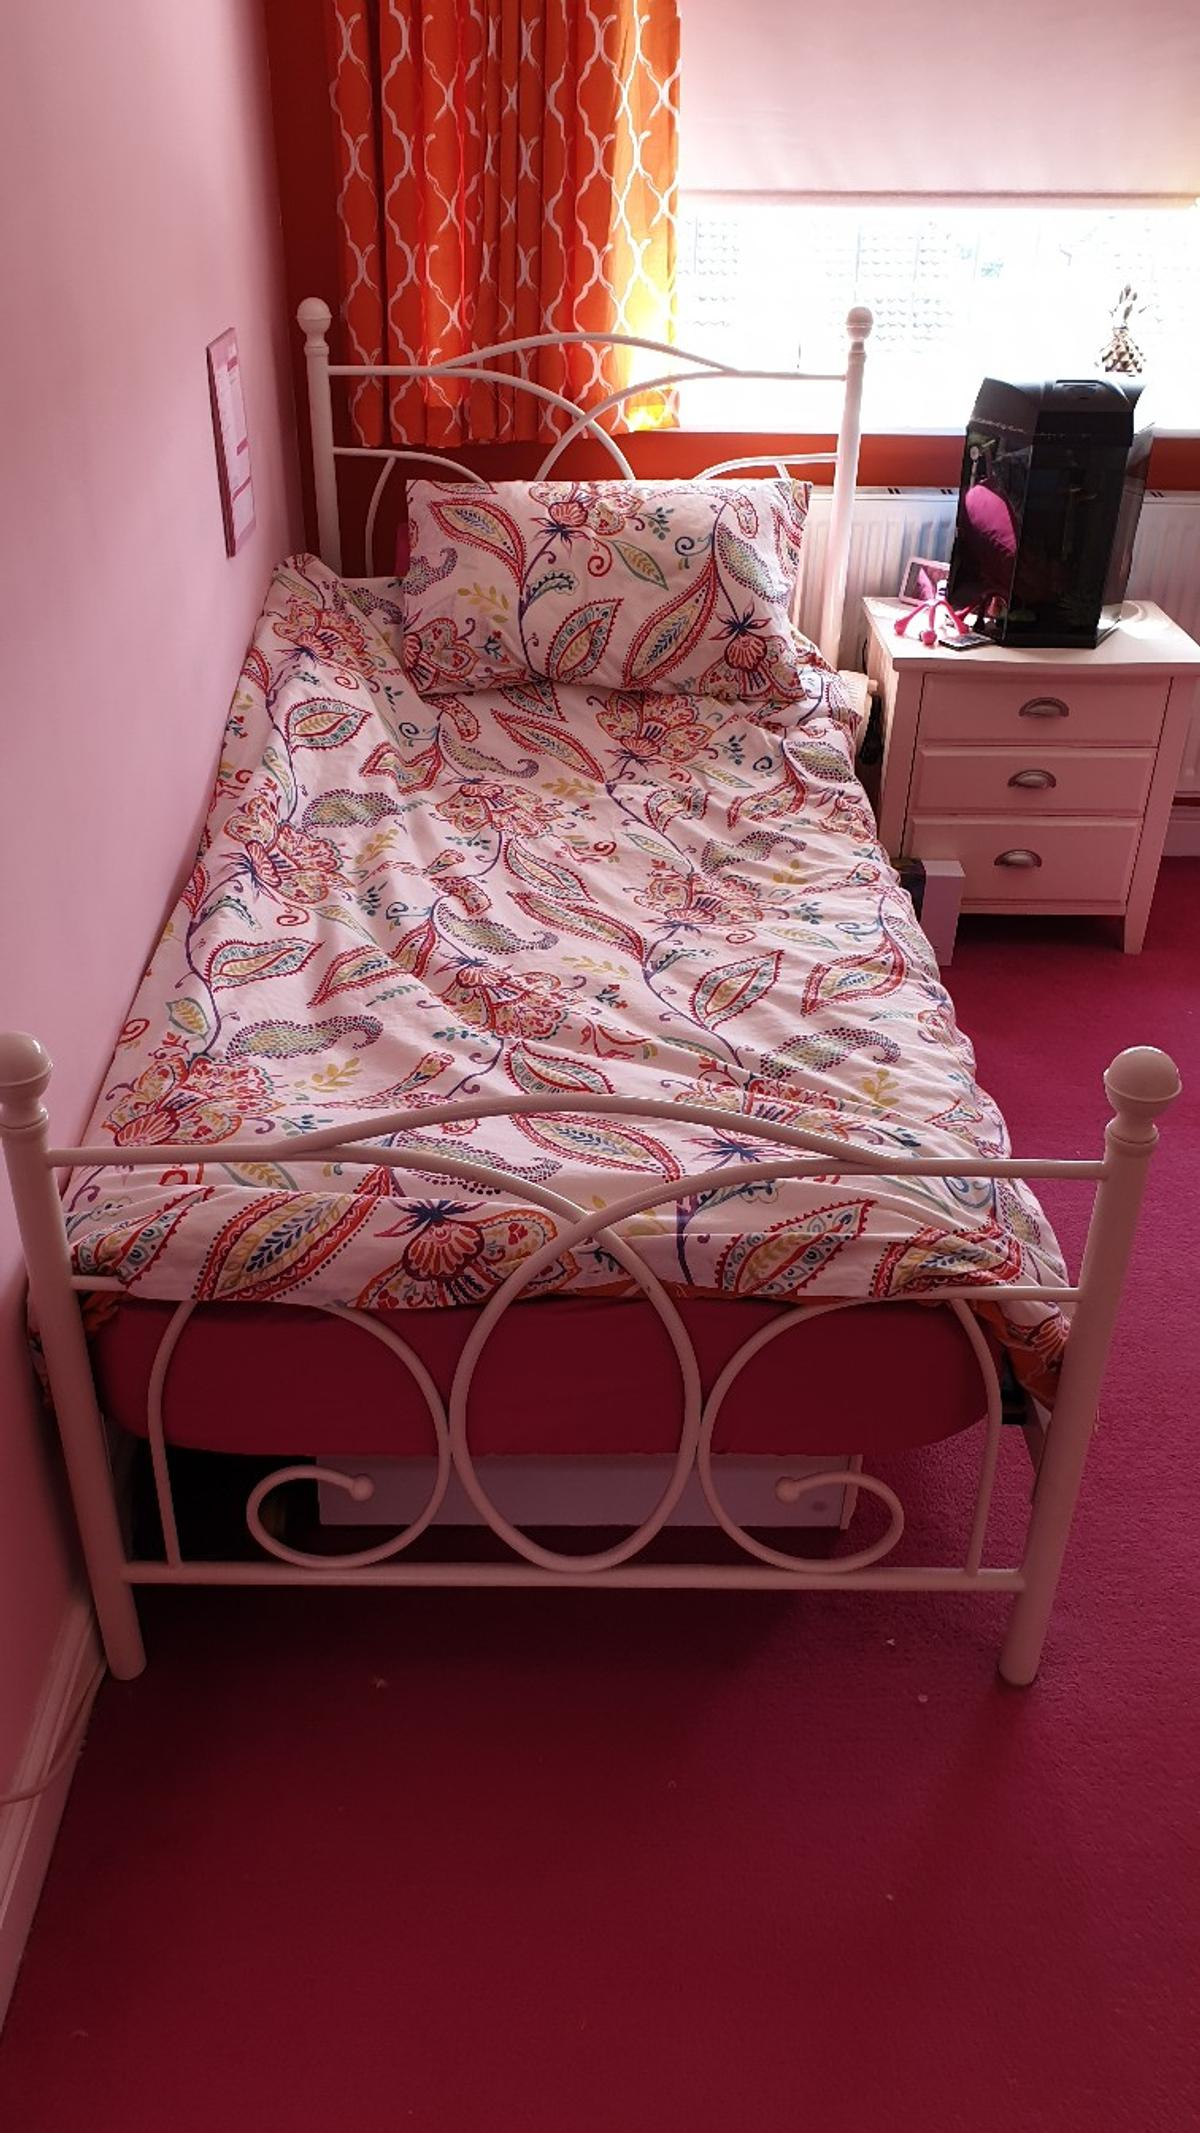 quality design d1554 f84e7 METAL SINGLE BED FRAME in SS9 Sea for £50.00 for sale | Shpock